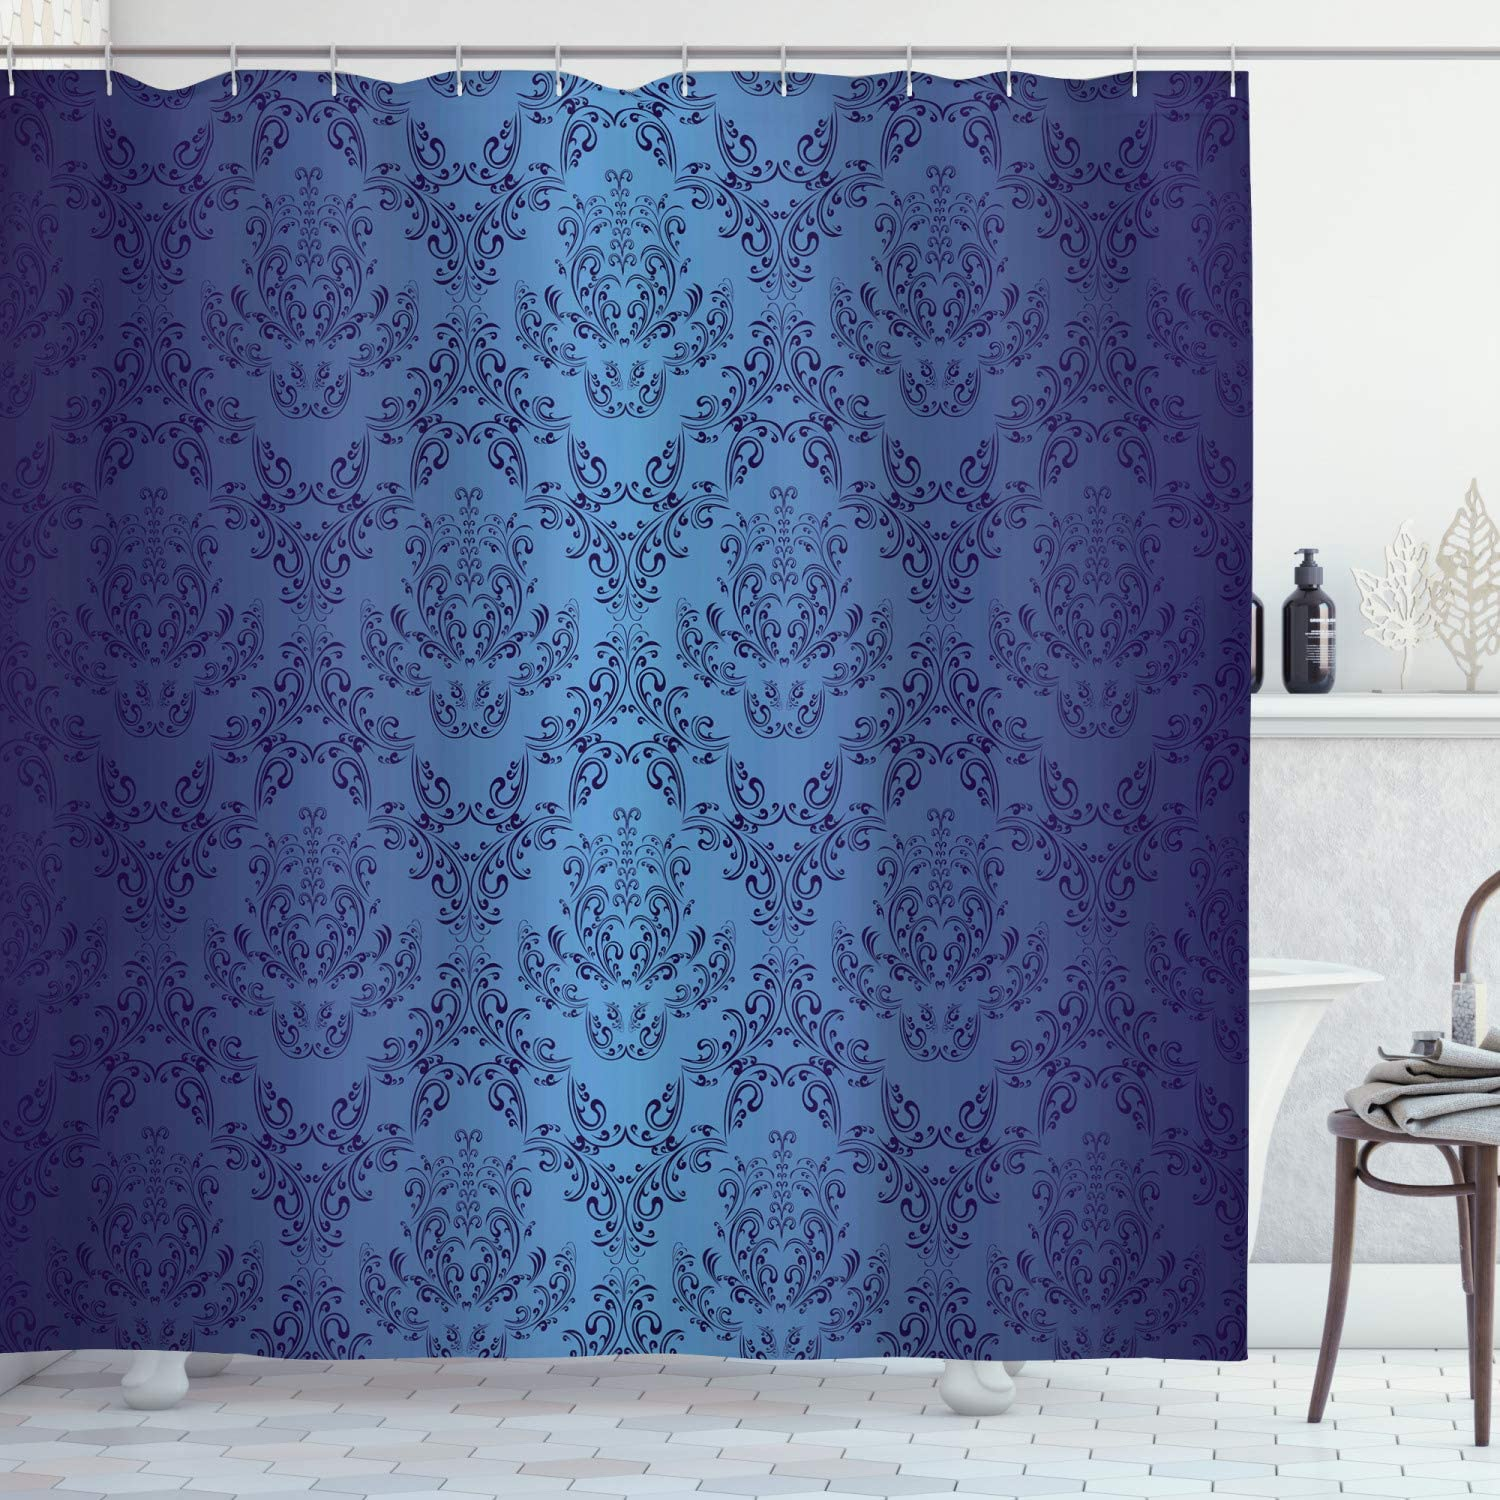 Ambesonne Navy Blue Shower Curtain, Antique Baroque Floral Swirling Patterns Victorian Vintage Retro Style, Cloth Fabric Bathroom Decor Set with Hooks, 70